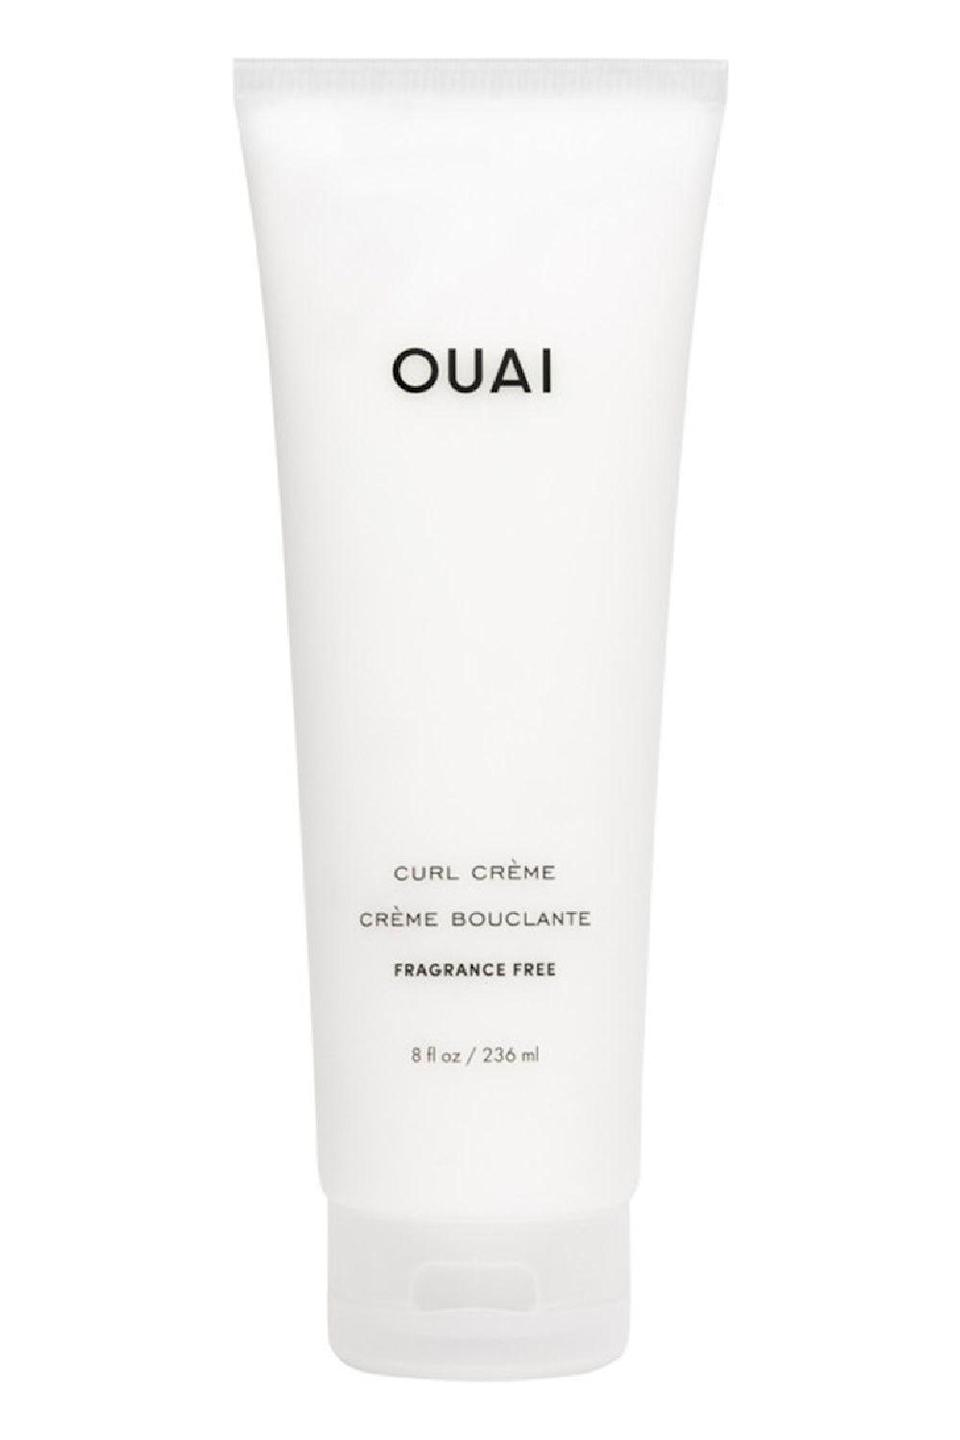 "<p><strong>OUAI</strong></p><p>nordstrom.com</p><p><strong>$32.00</strong></p><p><a href=""https://go.redirectingat.com?id=74968X1596630&url=https%3A%2F%2Fwww.nordstrom.com%2Fs%2Fouai-curl-creme%2F5882923&sref=https%3A%2F%2Fwww.cosmopolitan.com%2Fstyle-beauty%2Fbeauty%2Fg36119945%2Ffall-2021-hair-trends%2F"" rel=""nofollow noopener"" target=""_blank"" data-ylk=""slk:Shop Now"" class=""link rapid-noclick-resp"">Shop Now</a></p><p>If your hair has a natural curl to it, we'll stop <em>just</em> short of forcing you to buy this silicone-free <a href=""https://www.cosmopolitan.com/style-beauty/beauty/a23066979/best-curl-cream-natural-hair/"" rel=""nofollow noopener"" target=""_blank"" data-ylk=""slk:curl cream"" class=""link rapid-noclick-resp"">curl cream</a> designed for all <a href=""https://www.cosmopolitan.com/style-beauty/beauty/a26416683/curl-types/"" rel=""nofollow noopener"" target=""_blank"" data-ylk=""slk:curl types"" class=""link rapid-noclick-resp"">curl types</a>. It uses a combination of hair oils (like linseed, <a href=""https://www.cosmopolitan.com/style-beauty/beauty/g10297243/coconut-oil-products-for-hair/"" rel=""nofollow noopener"" target=""_blank"" data-ylk=""slk:coconut"" class=""link rapid-noclick-resp"">coconut</a>, and chia seed) to <strong>help define and moisturize your strands</strong> <strong>and add shine</strong> for the dreamiest curly whispies and edges. </p>"